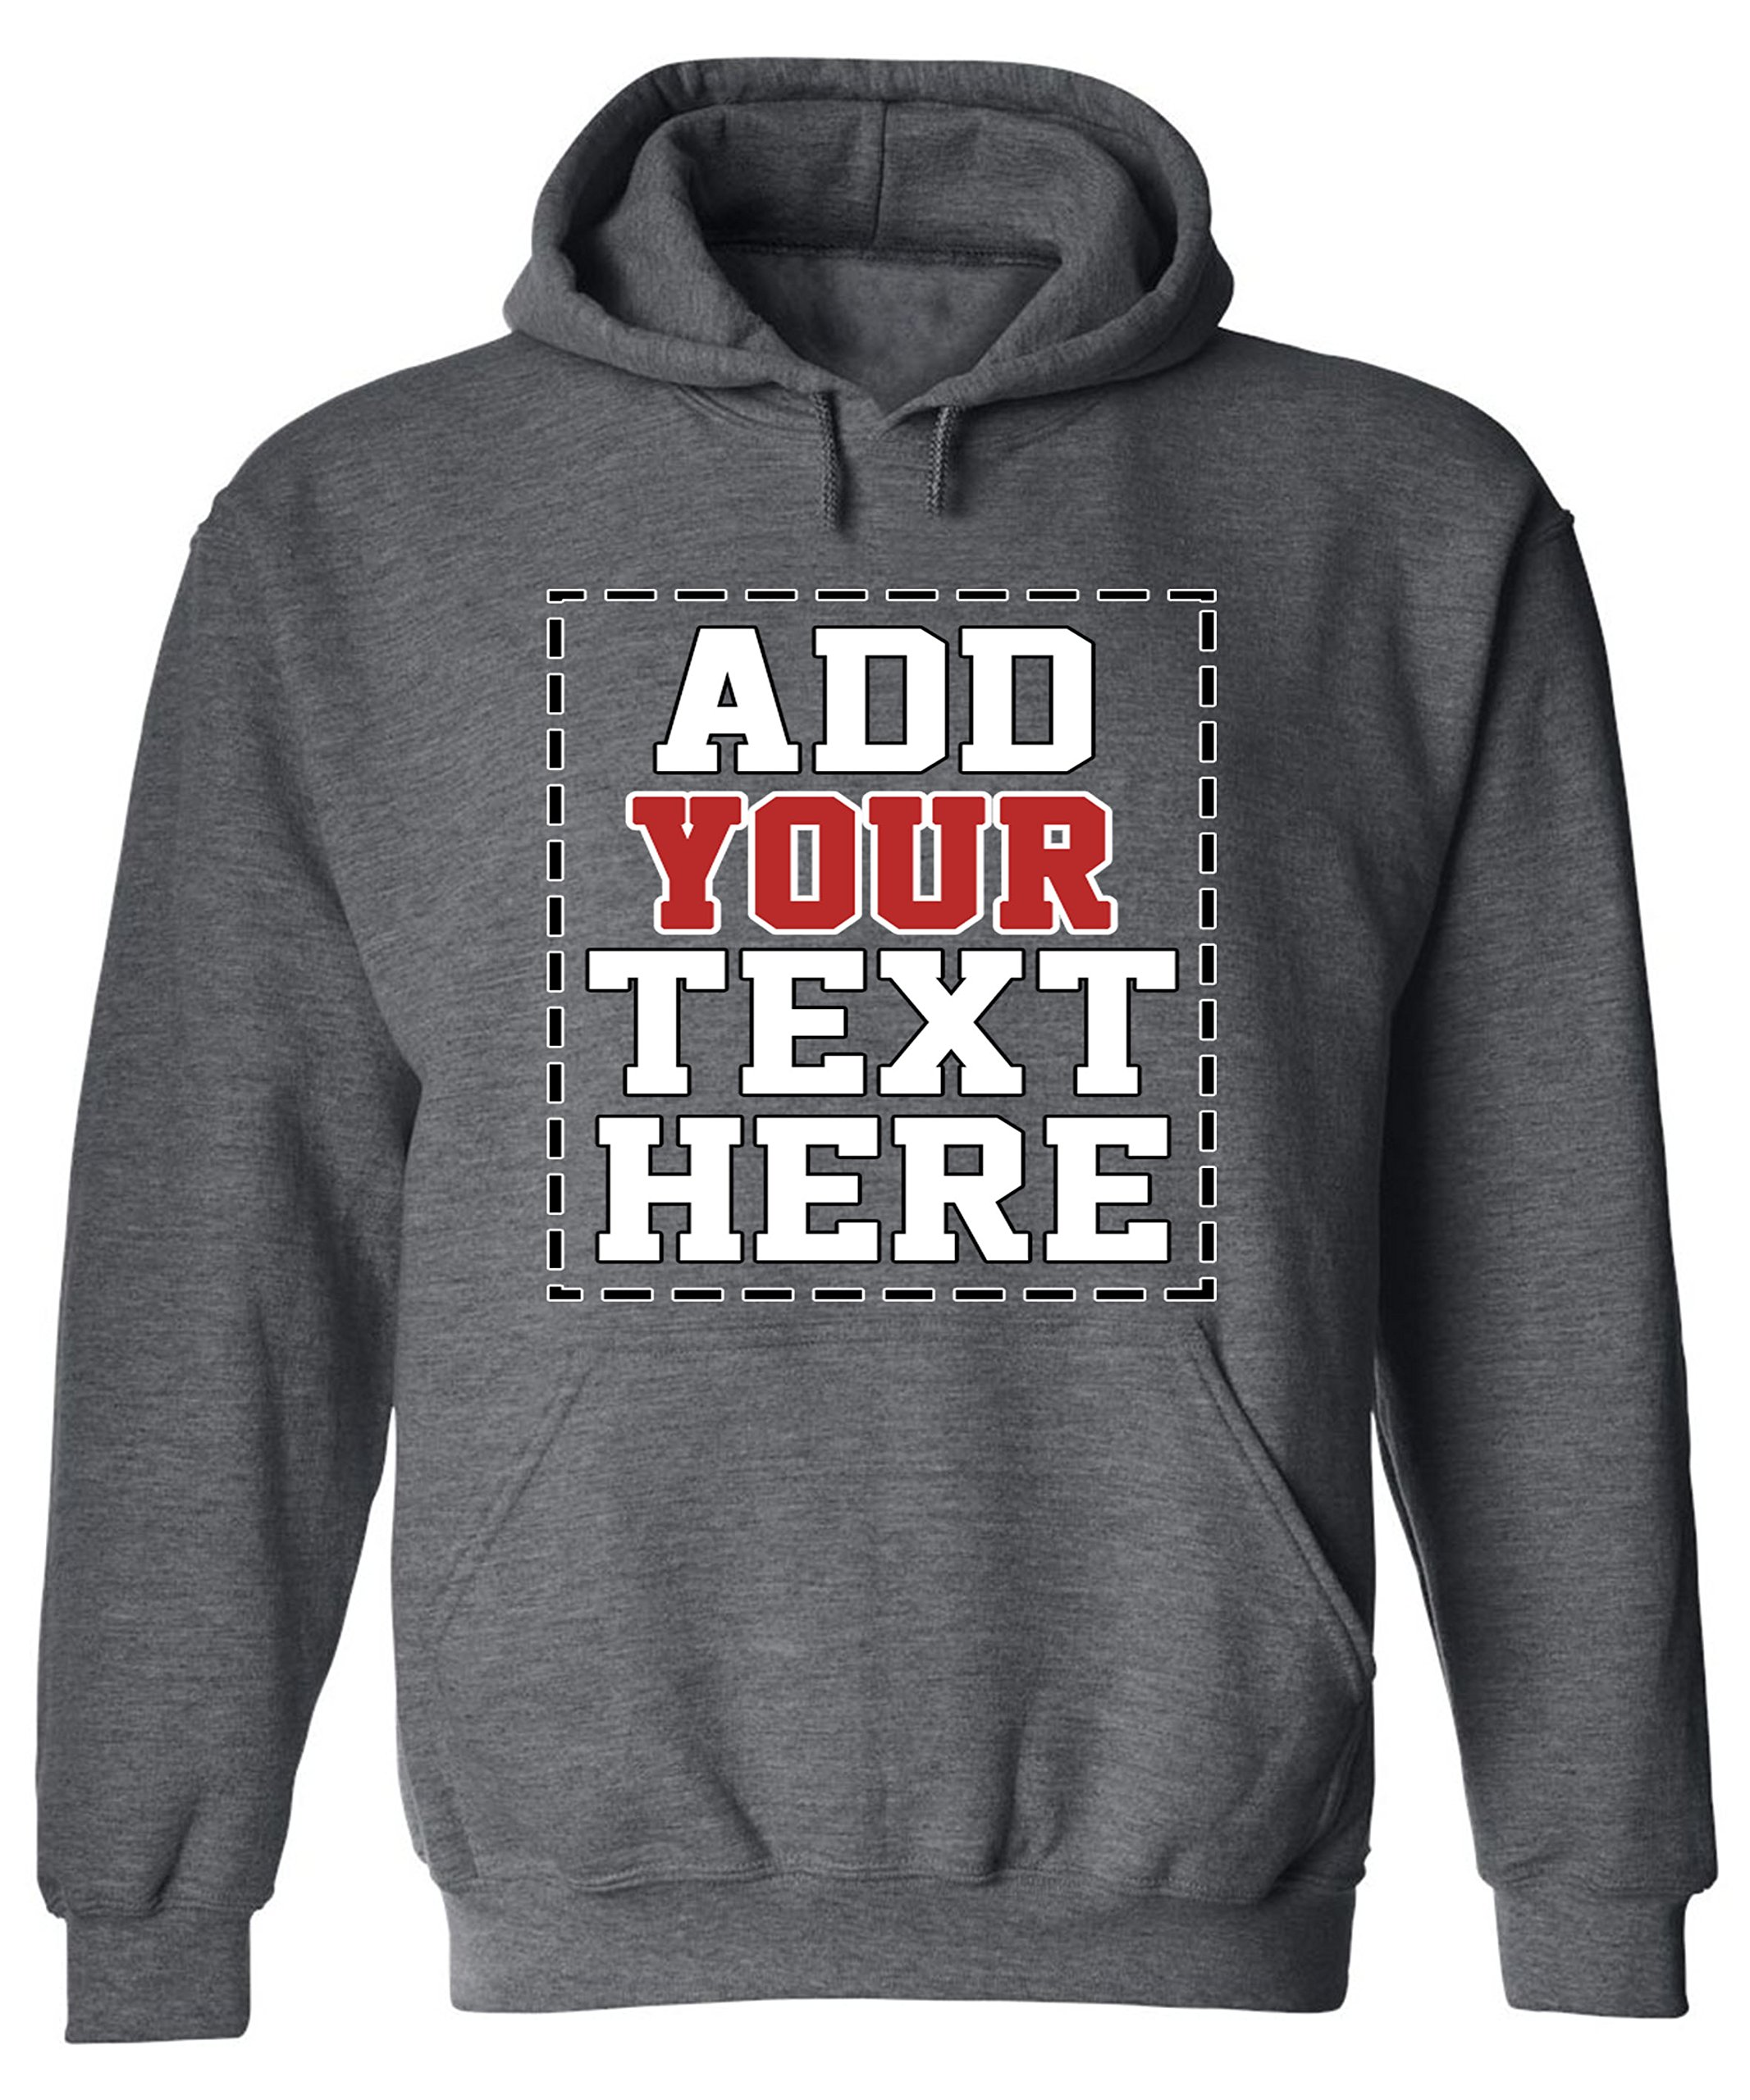 Own Design Hoodie Graphic Custom Hoodies Your Cool Sweaters amp; Women For Men aRax5